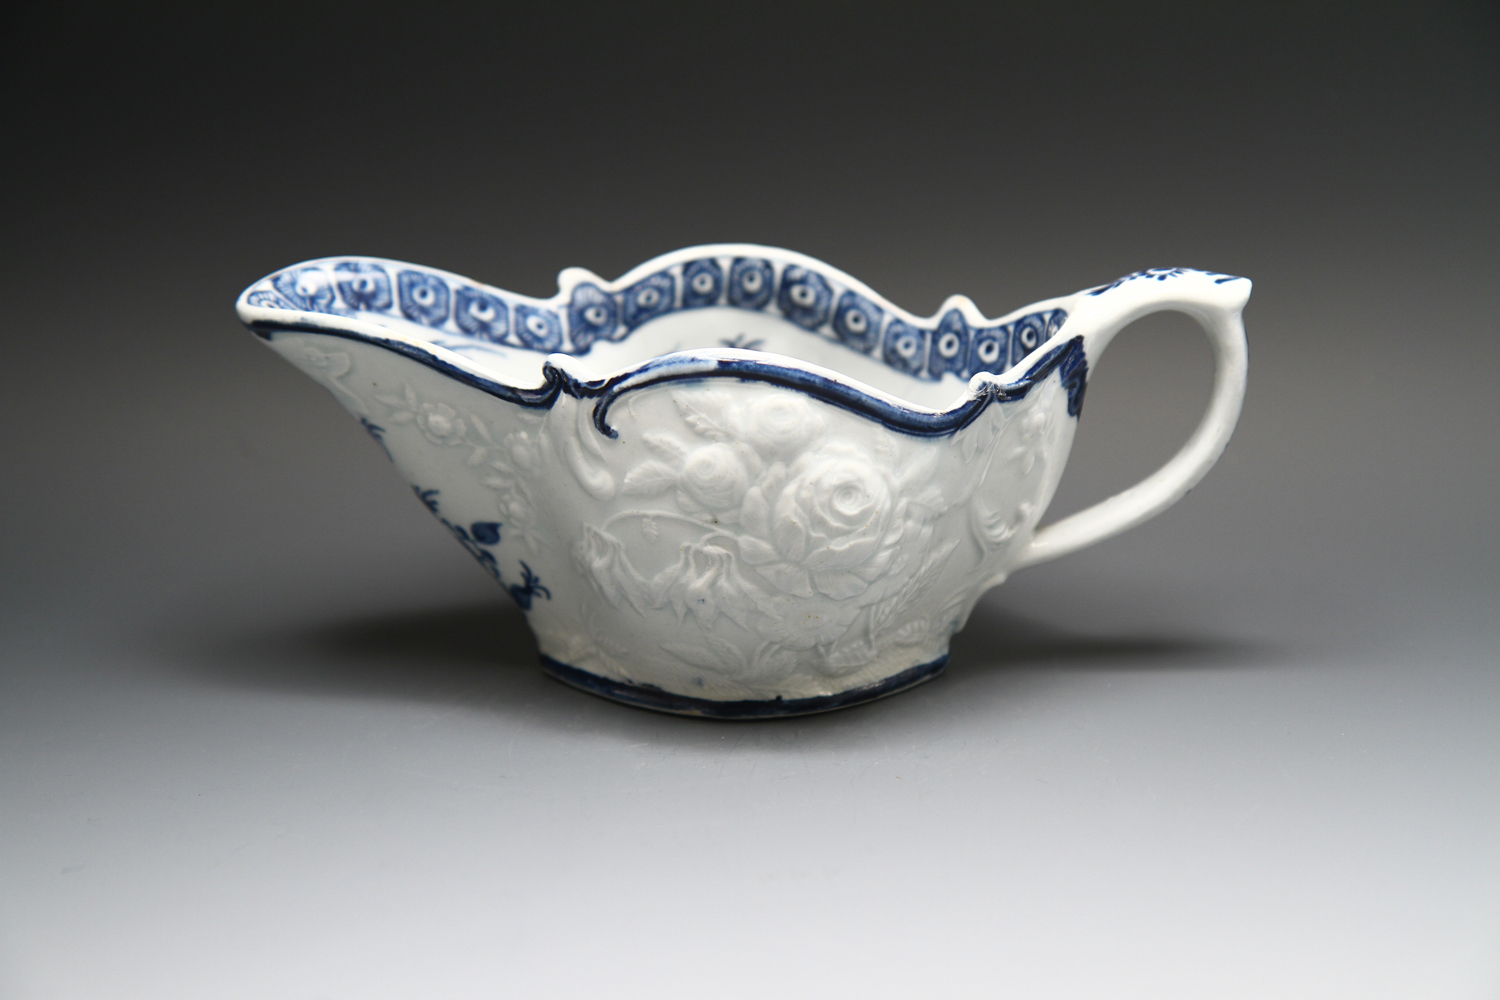 1089 - A good Bow sauceboat of low shape c 1763-5